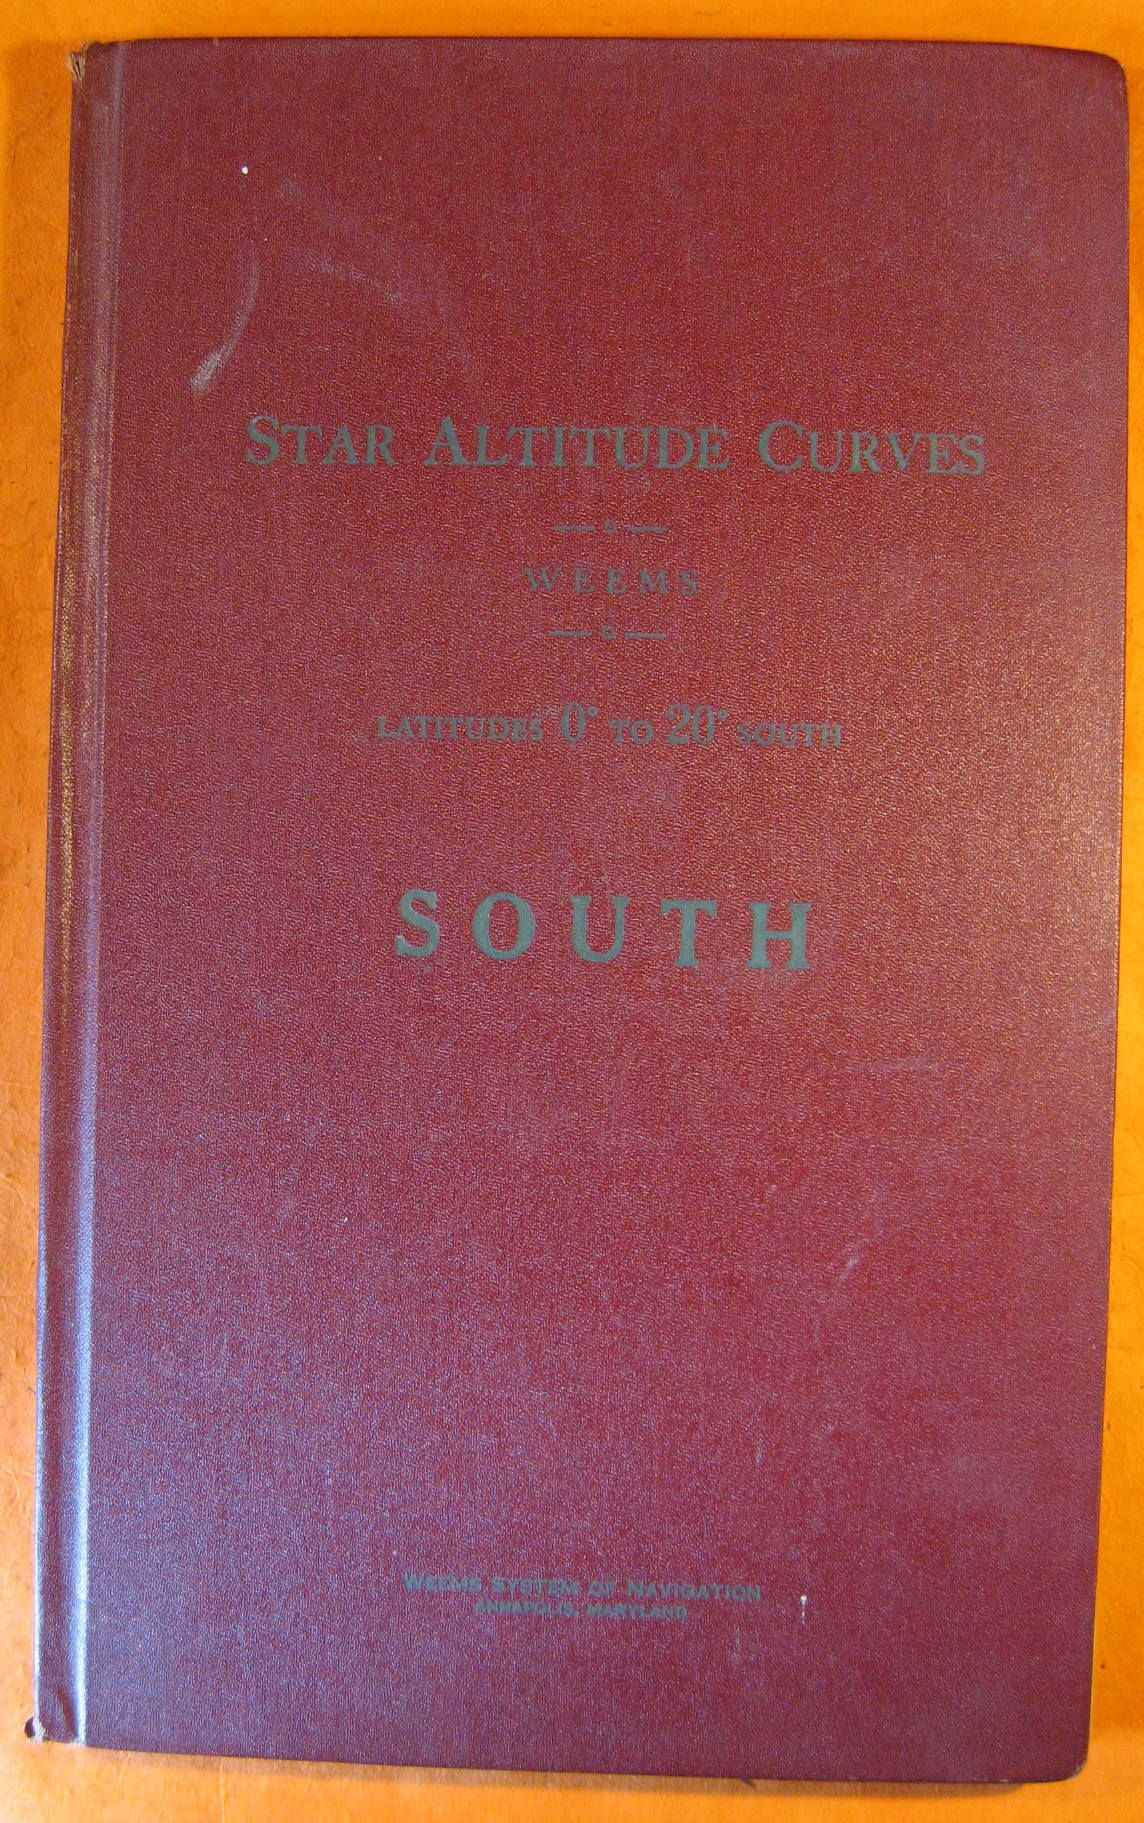 Star Altitude Curves Latitudes 0 Degrees to 20 Degrees South, Weems